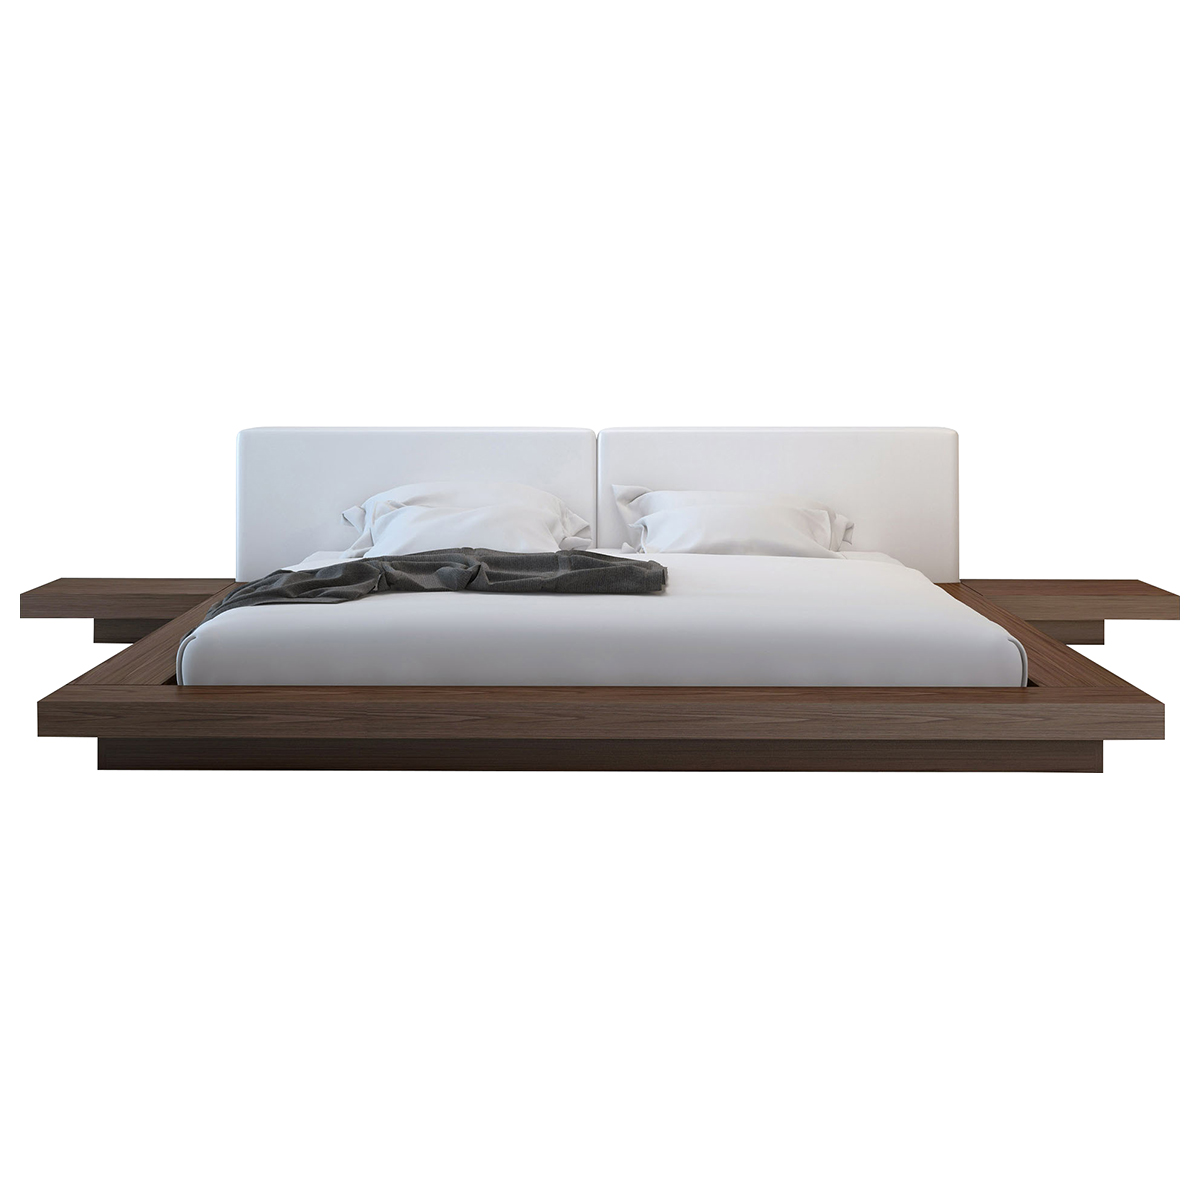 worth bed - cal king  walnut  white leatherette